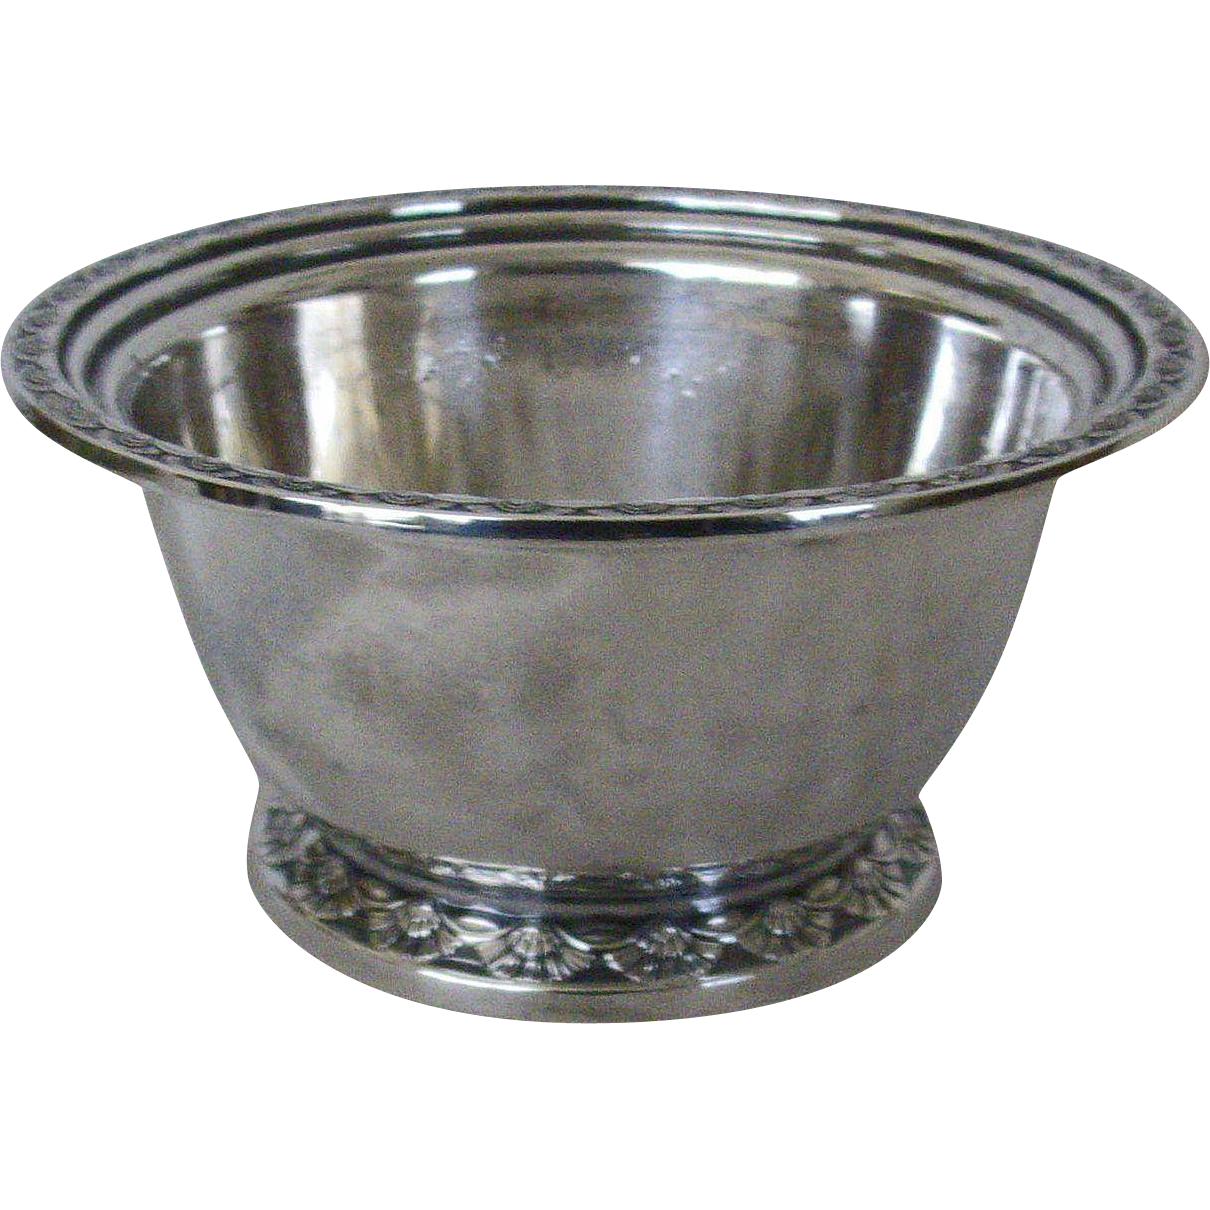 Silver Soldered Bowl With Engraved Edges